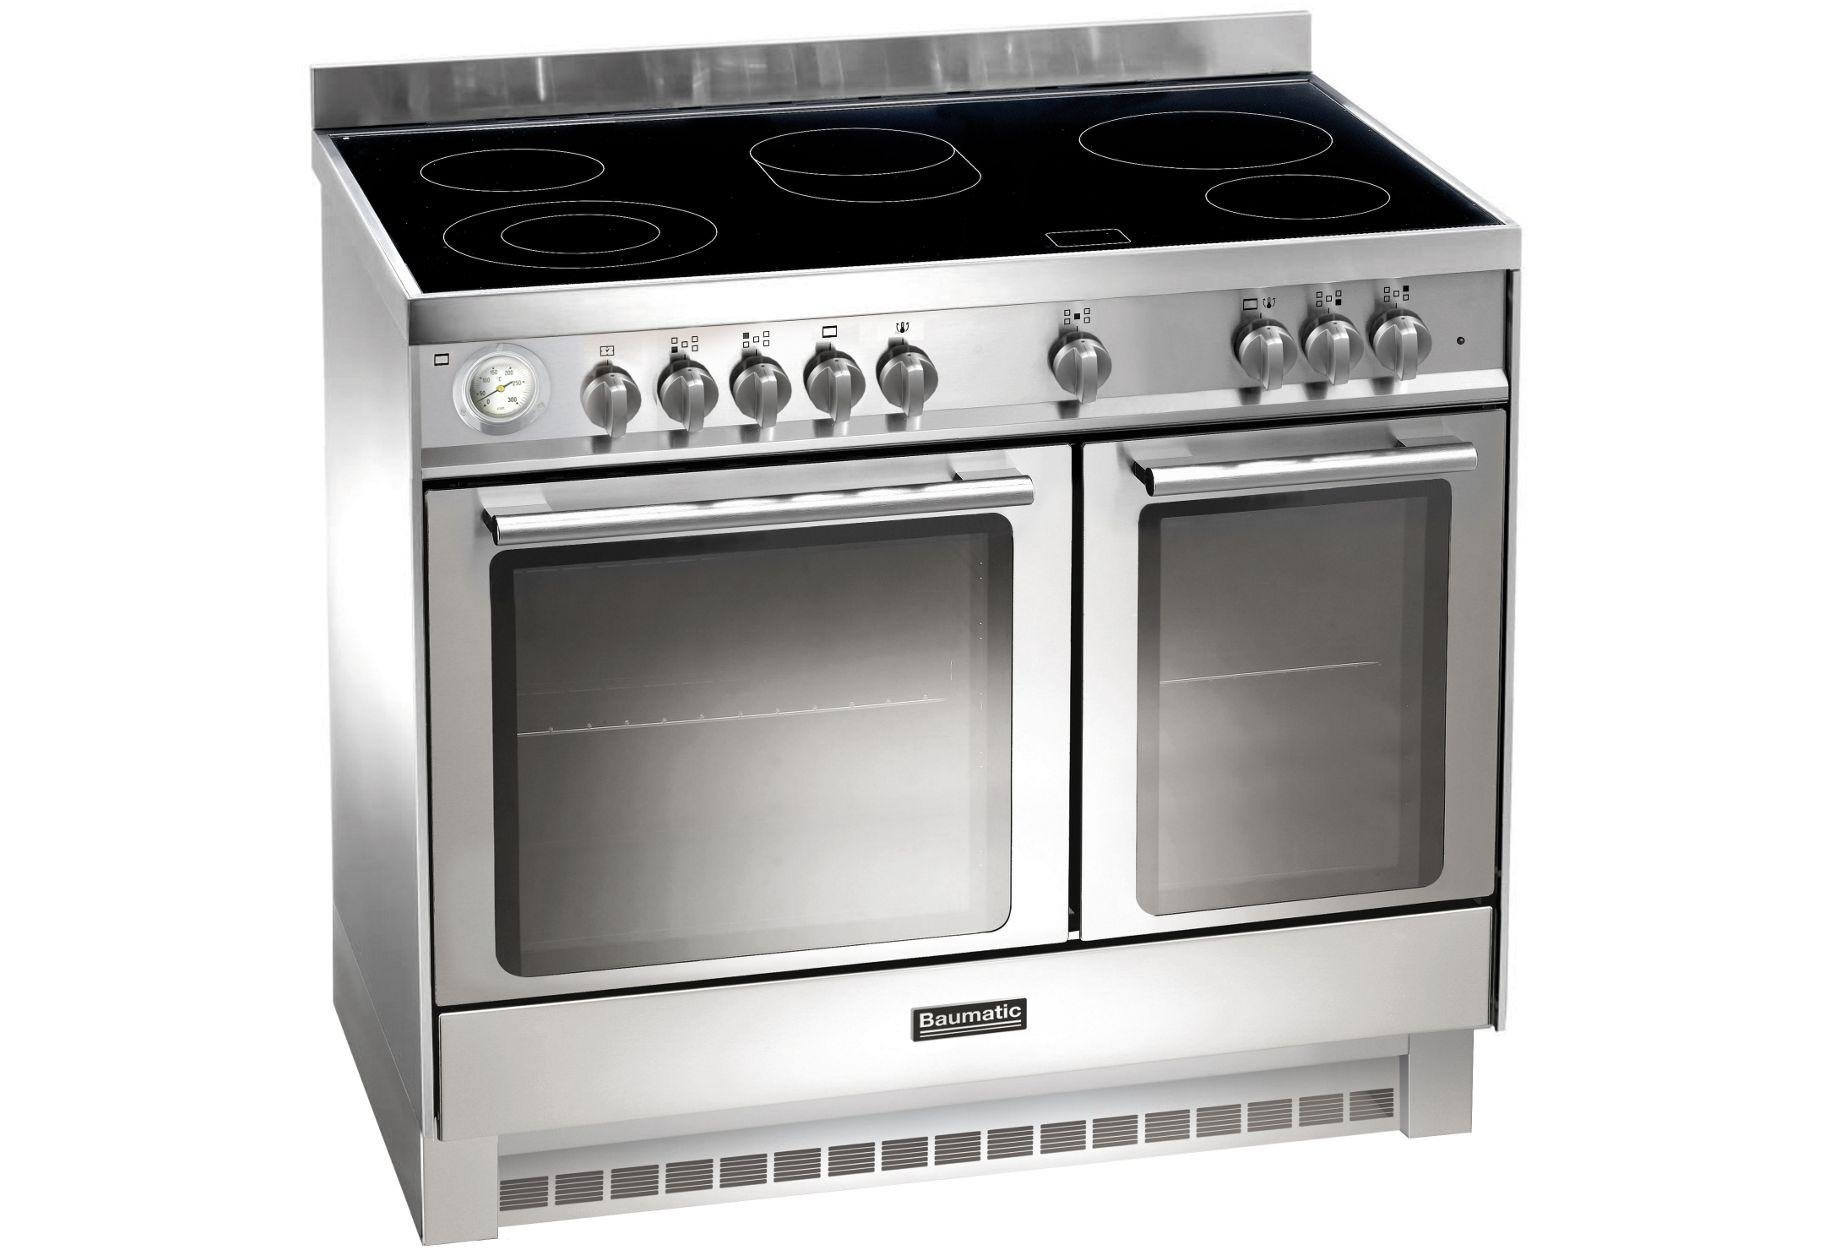 Image of Baumatic BCE 9255 Electric Range Cooker - Stainless Steel.